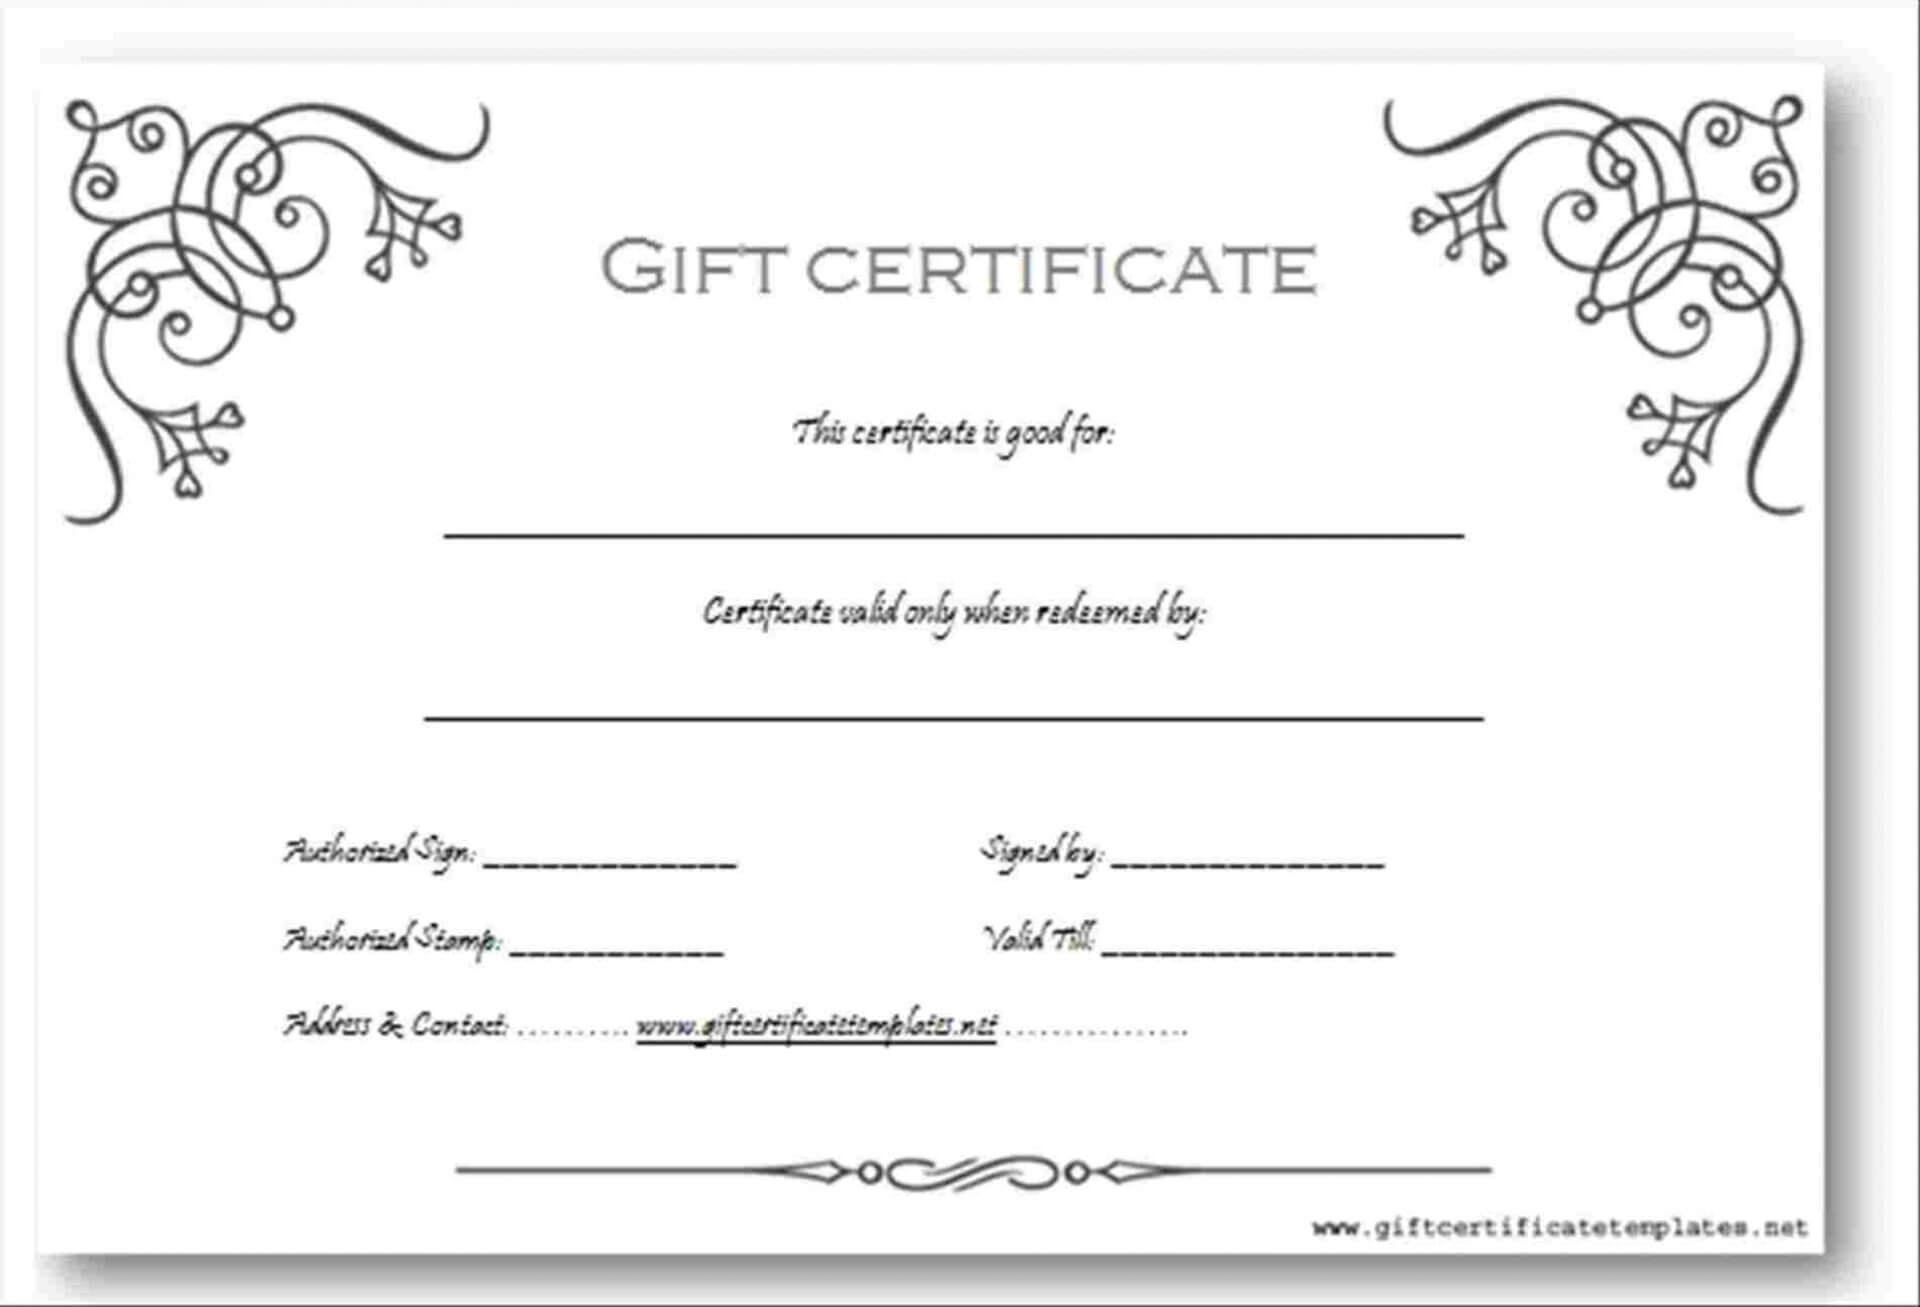 004 Free Gift Card Template Word 1920X1440 Striking Ideas Inside Black And White Gift Certificate Template Free